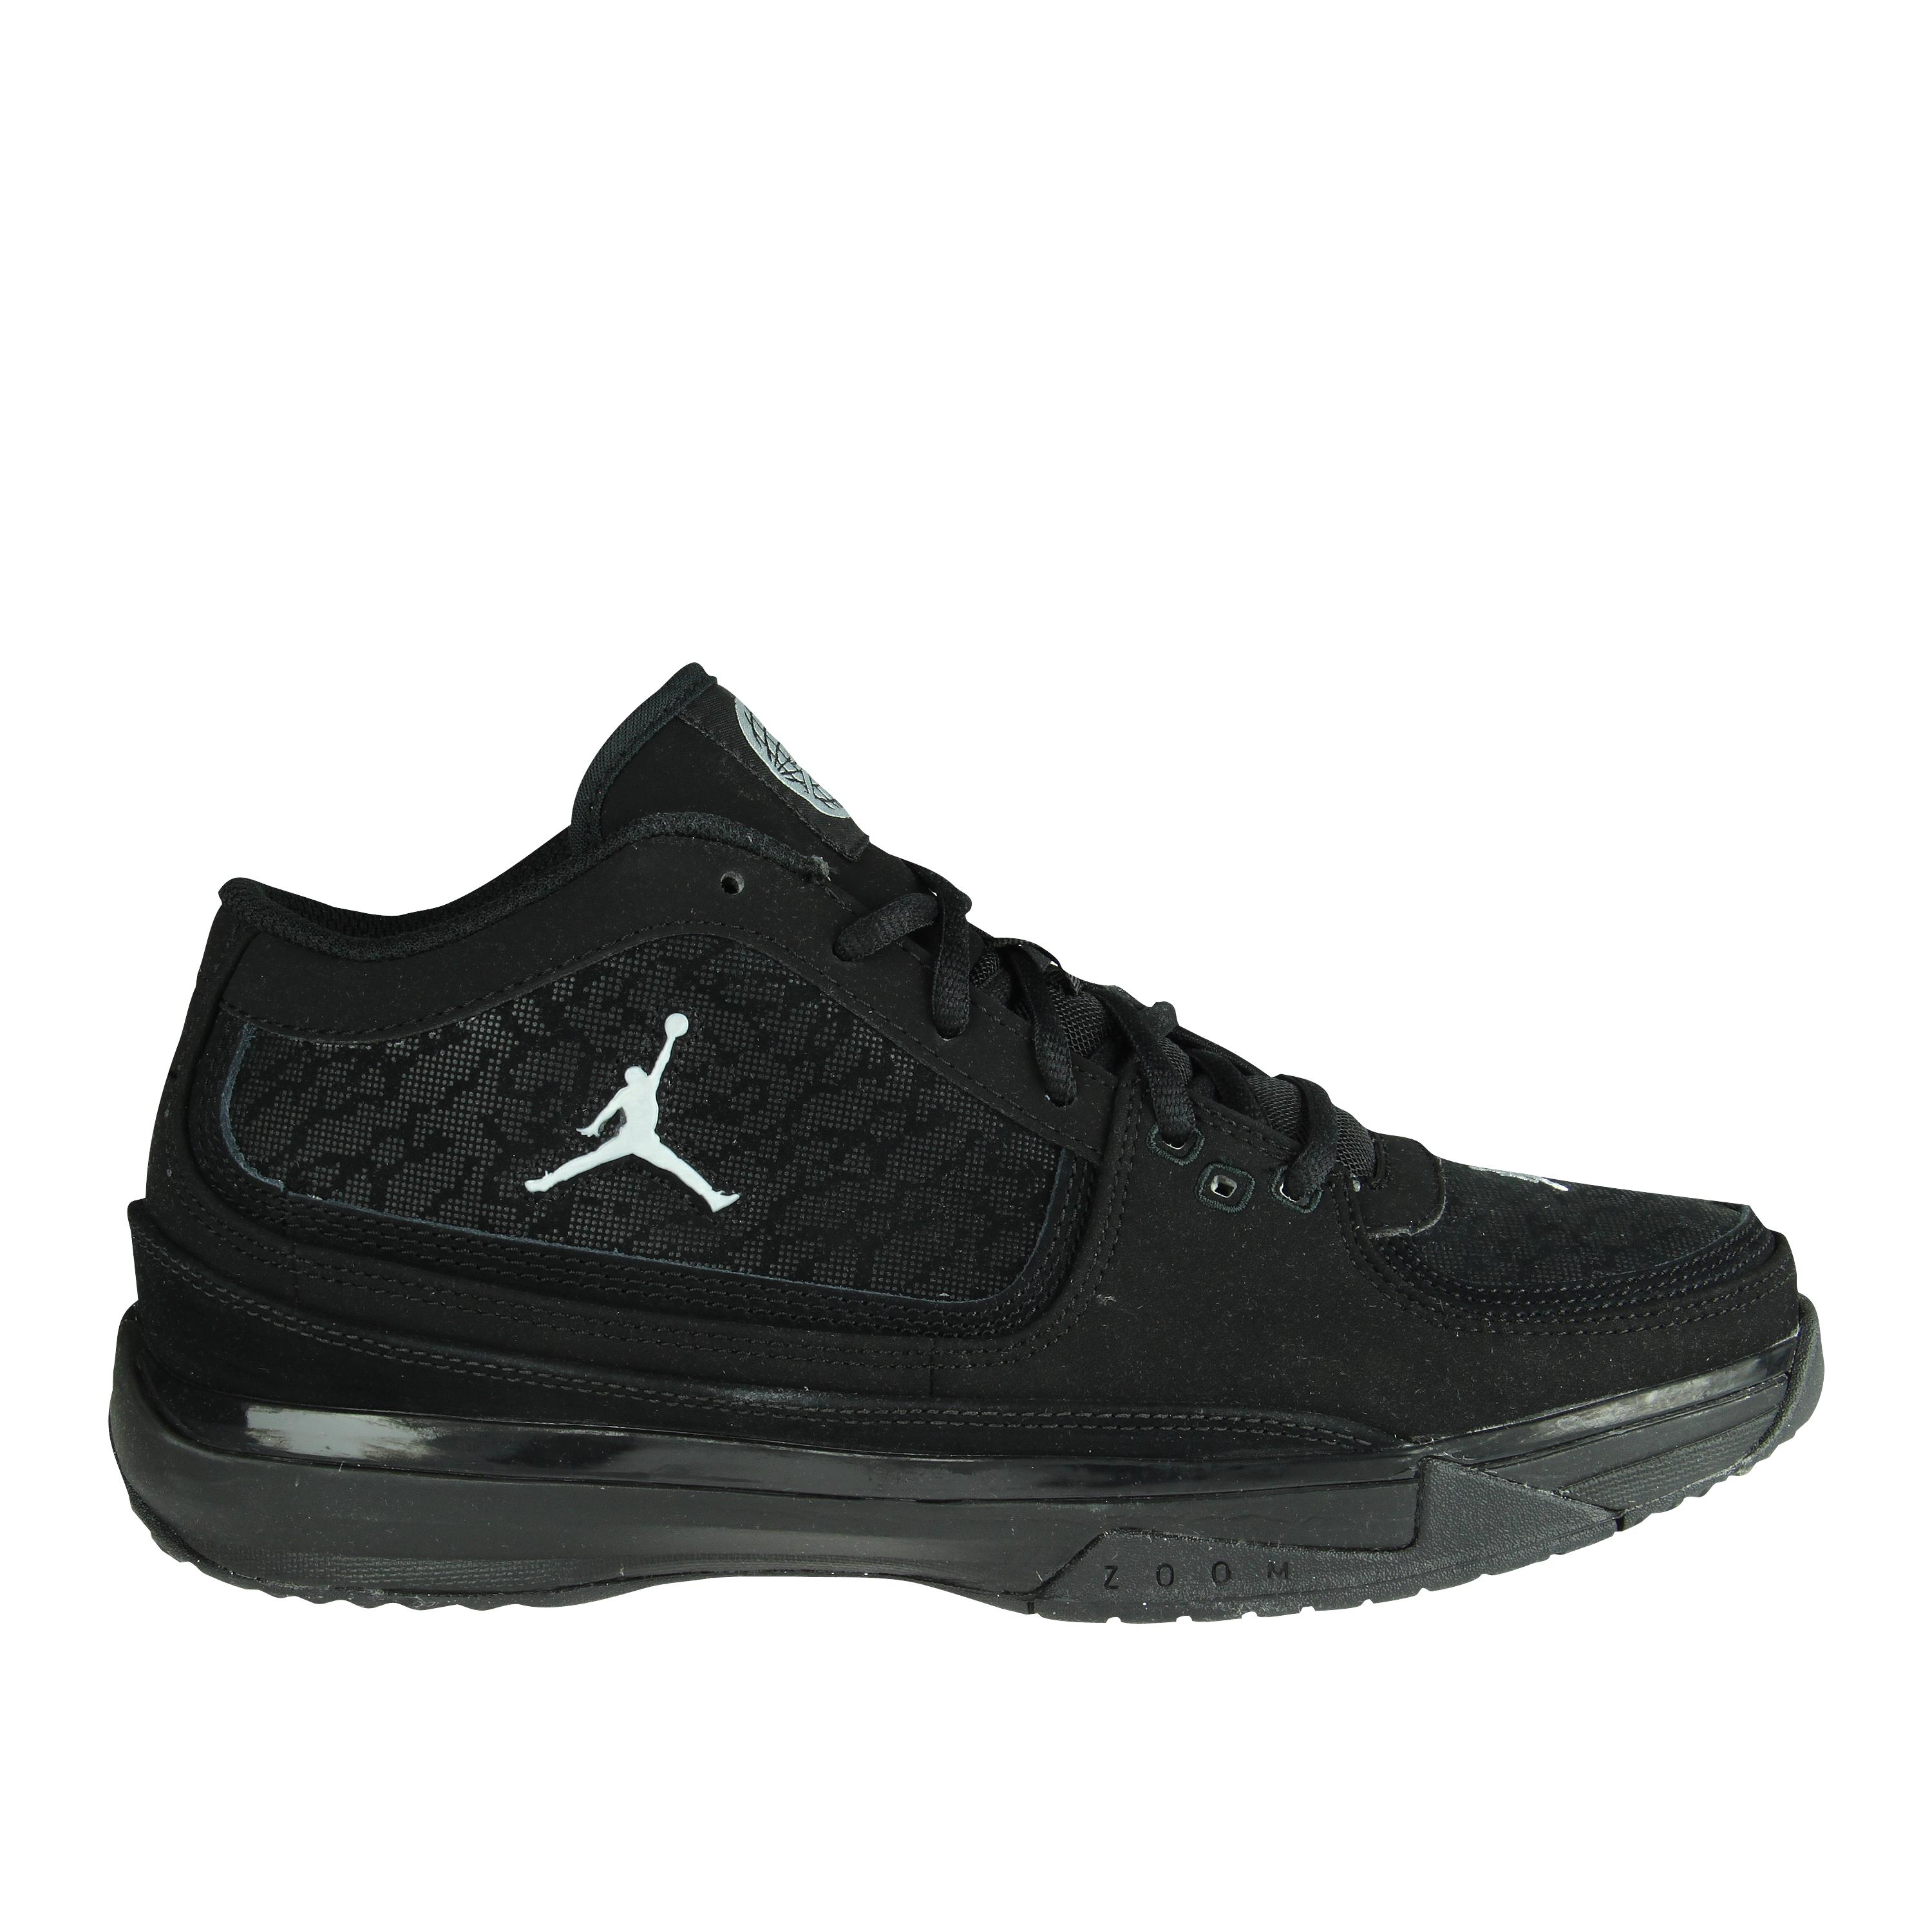 Jordan Team Iso Low Black